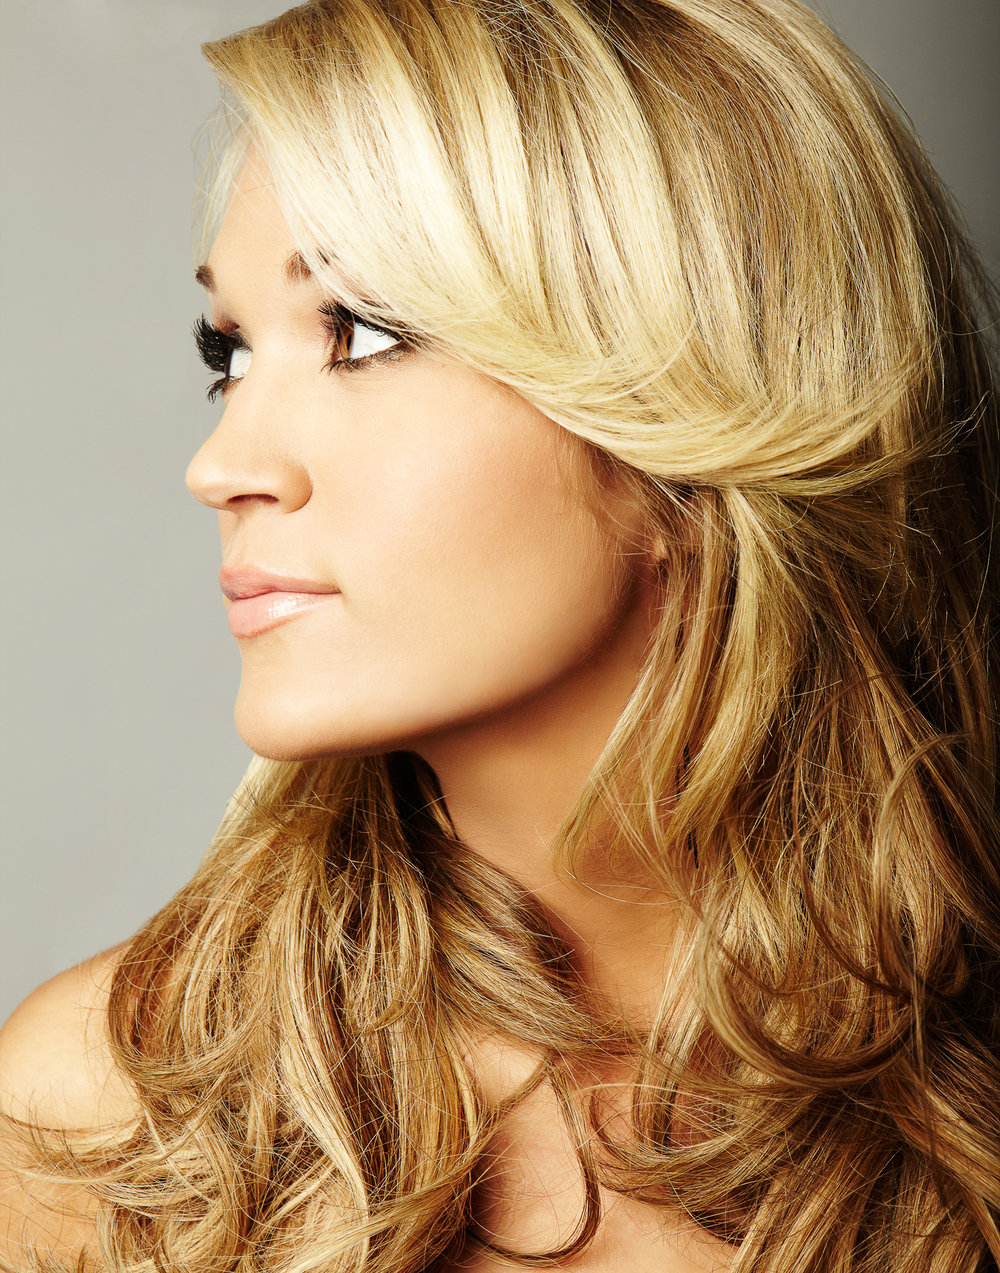 Carrie_Underwood_6.jpg